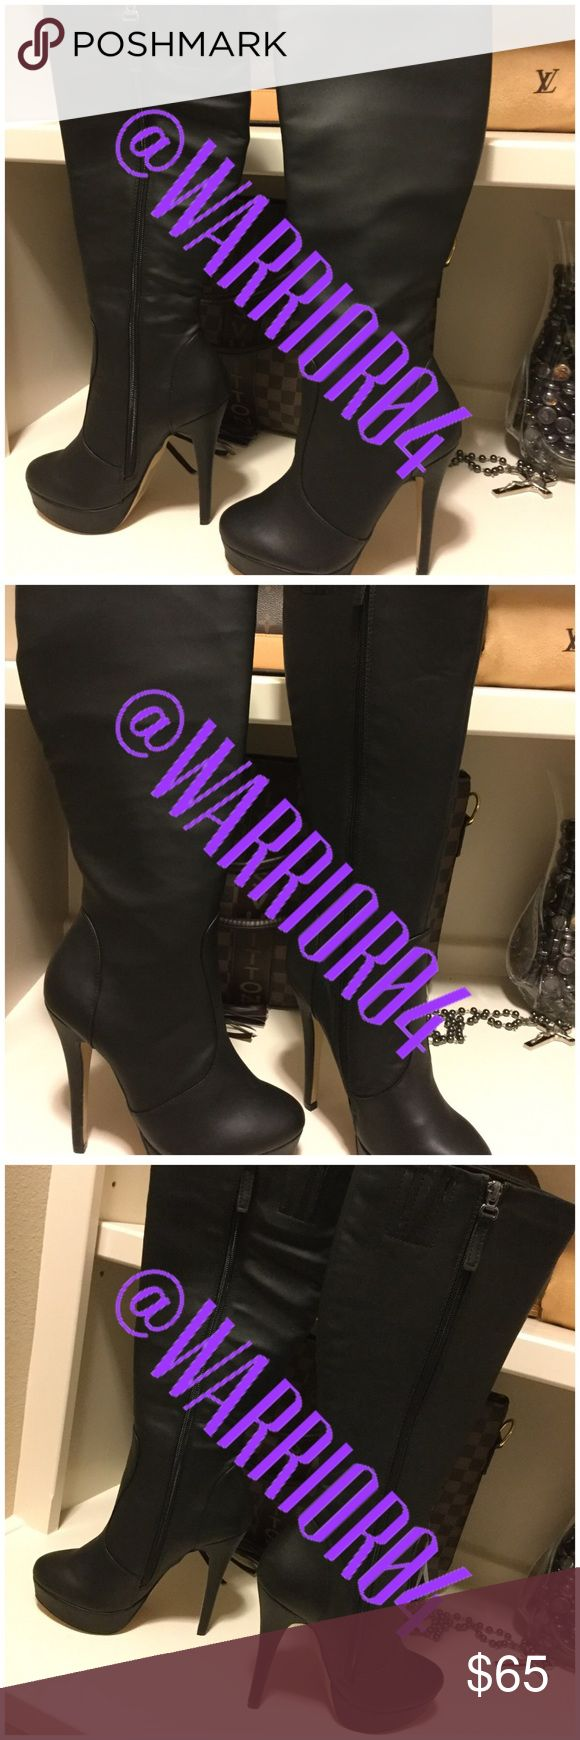 My Favorite LBB Little Black Boots Size 6.5 NWB My Favorite LBB Little Black Boots Size 6.5 NWB no price on them but never worn SHOE DAZZLE STYLE is MOIRA Shoe Dazzle Shoes Heeled Boots